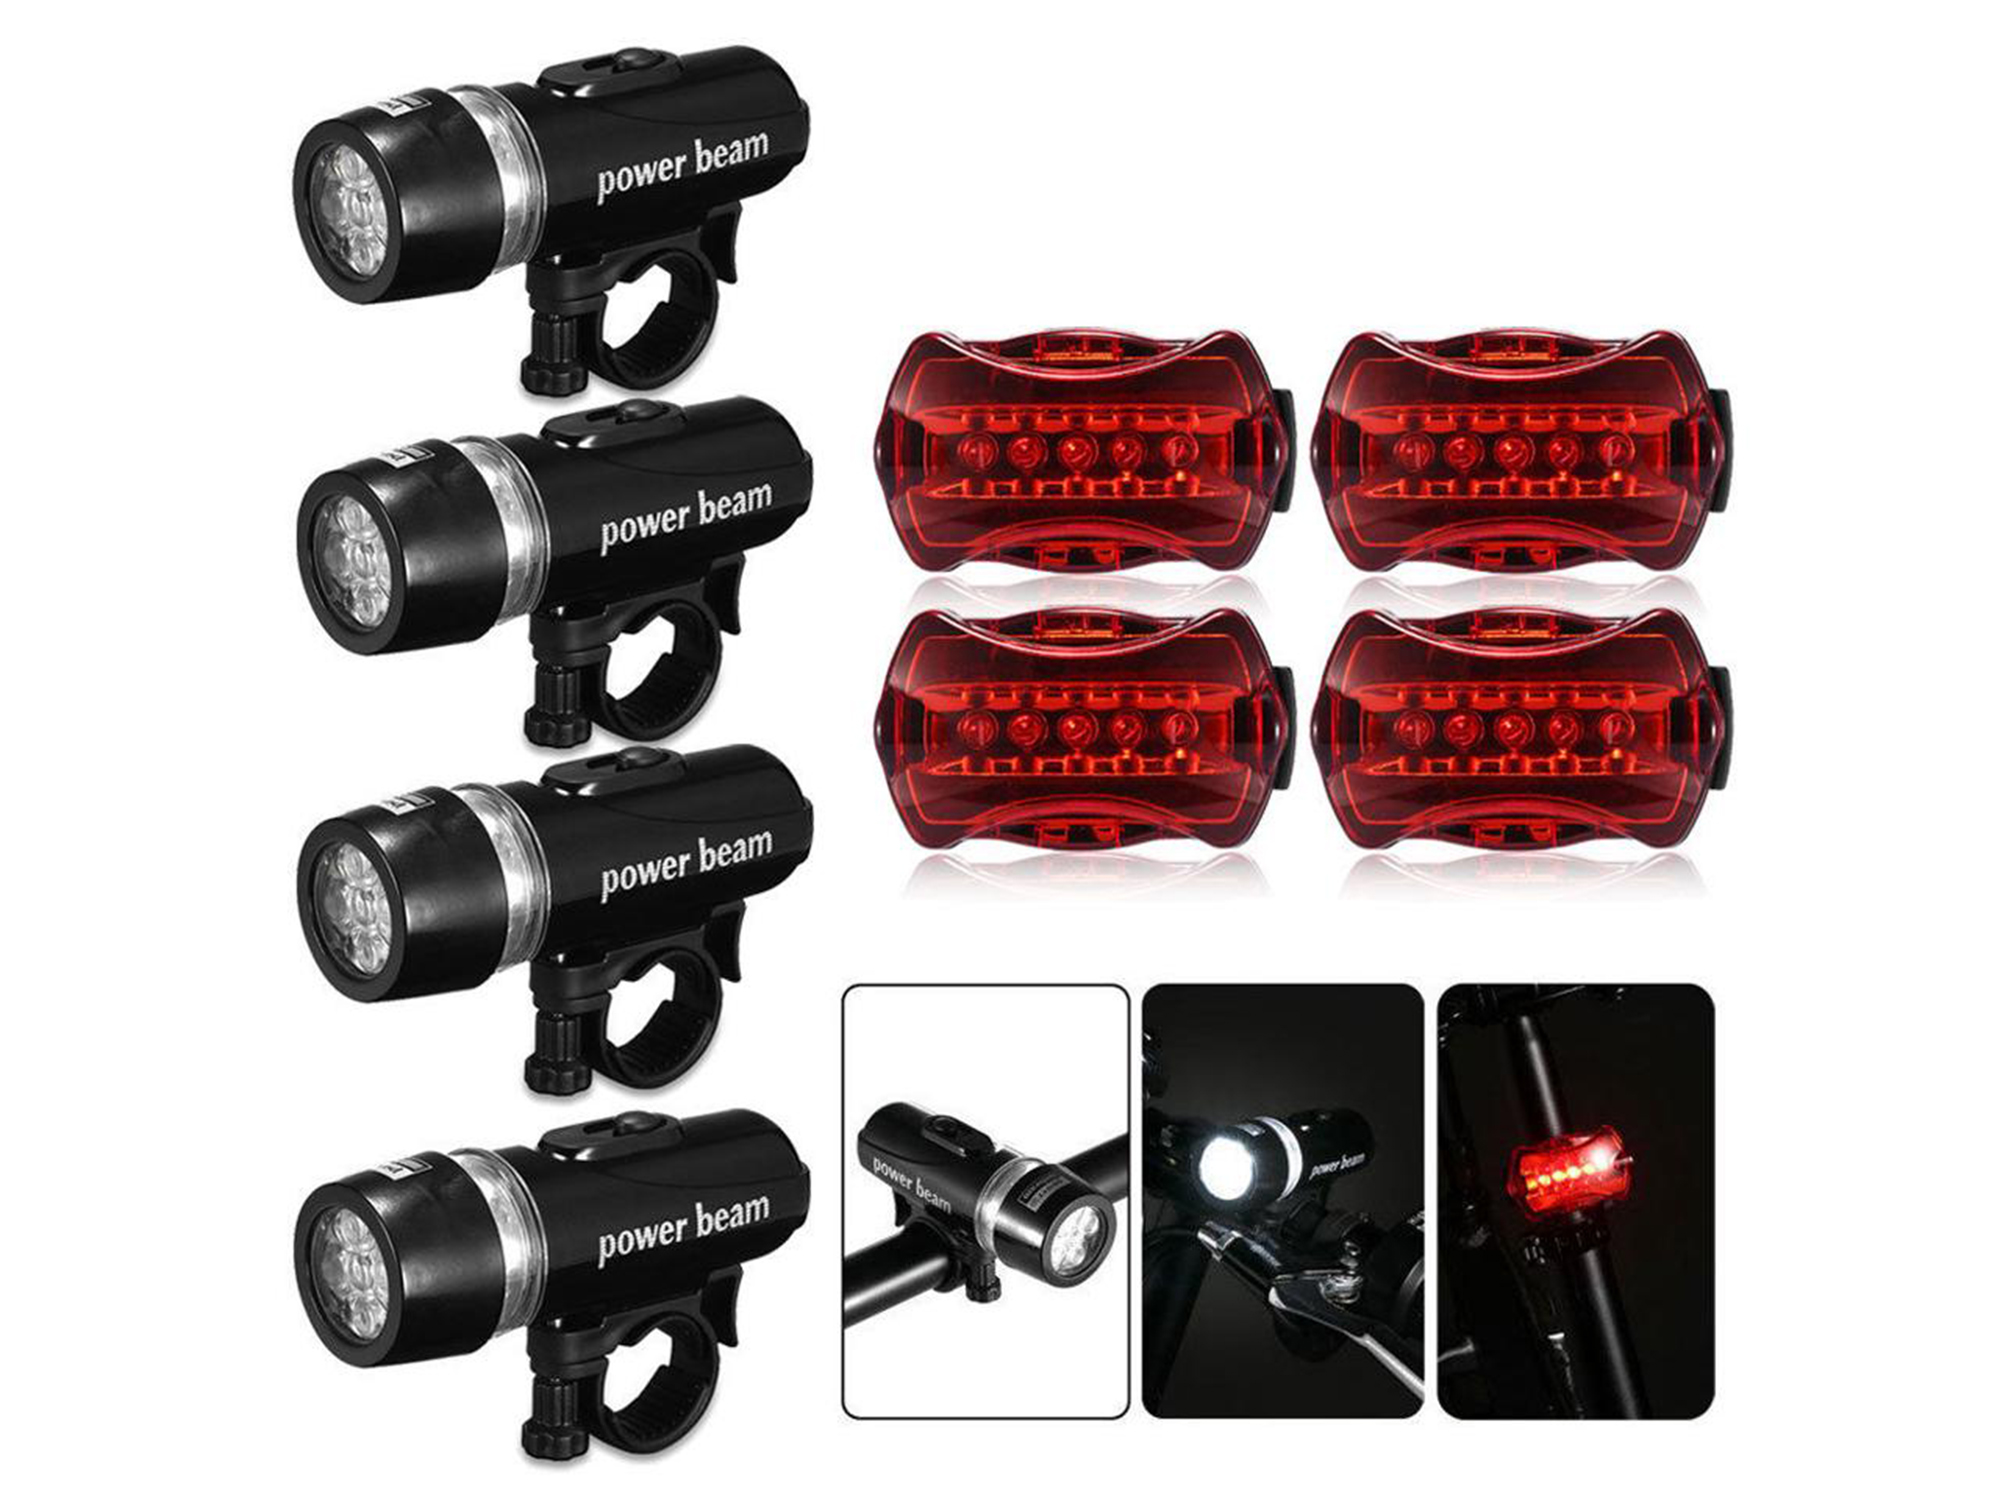 Front Head FLASHLIGHT Waterproof Lamp Bike Bicycle Light 5 LED Rear Safety